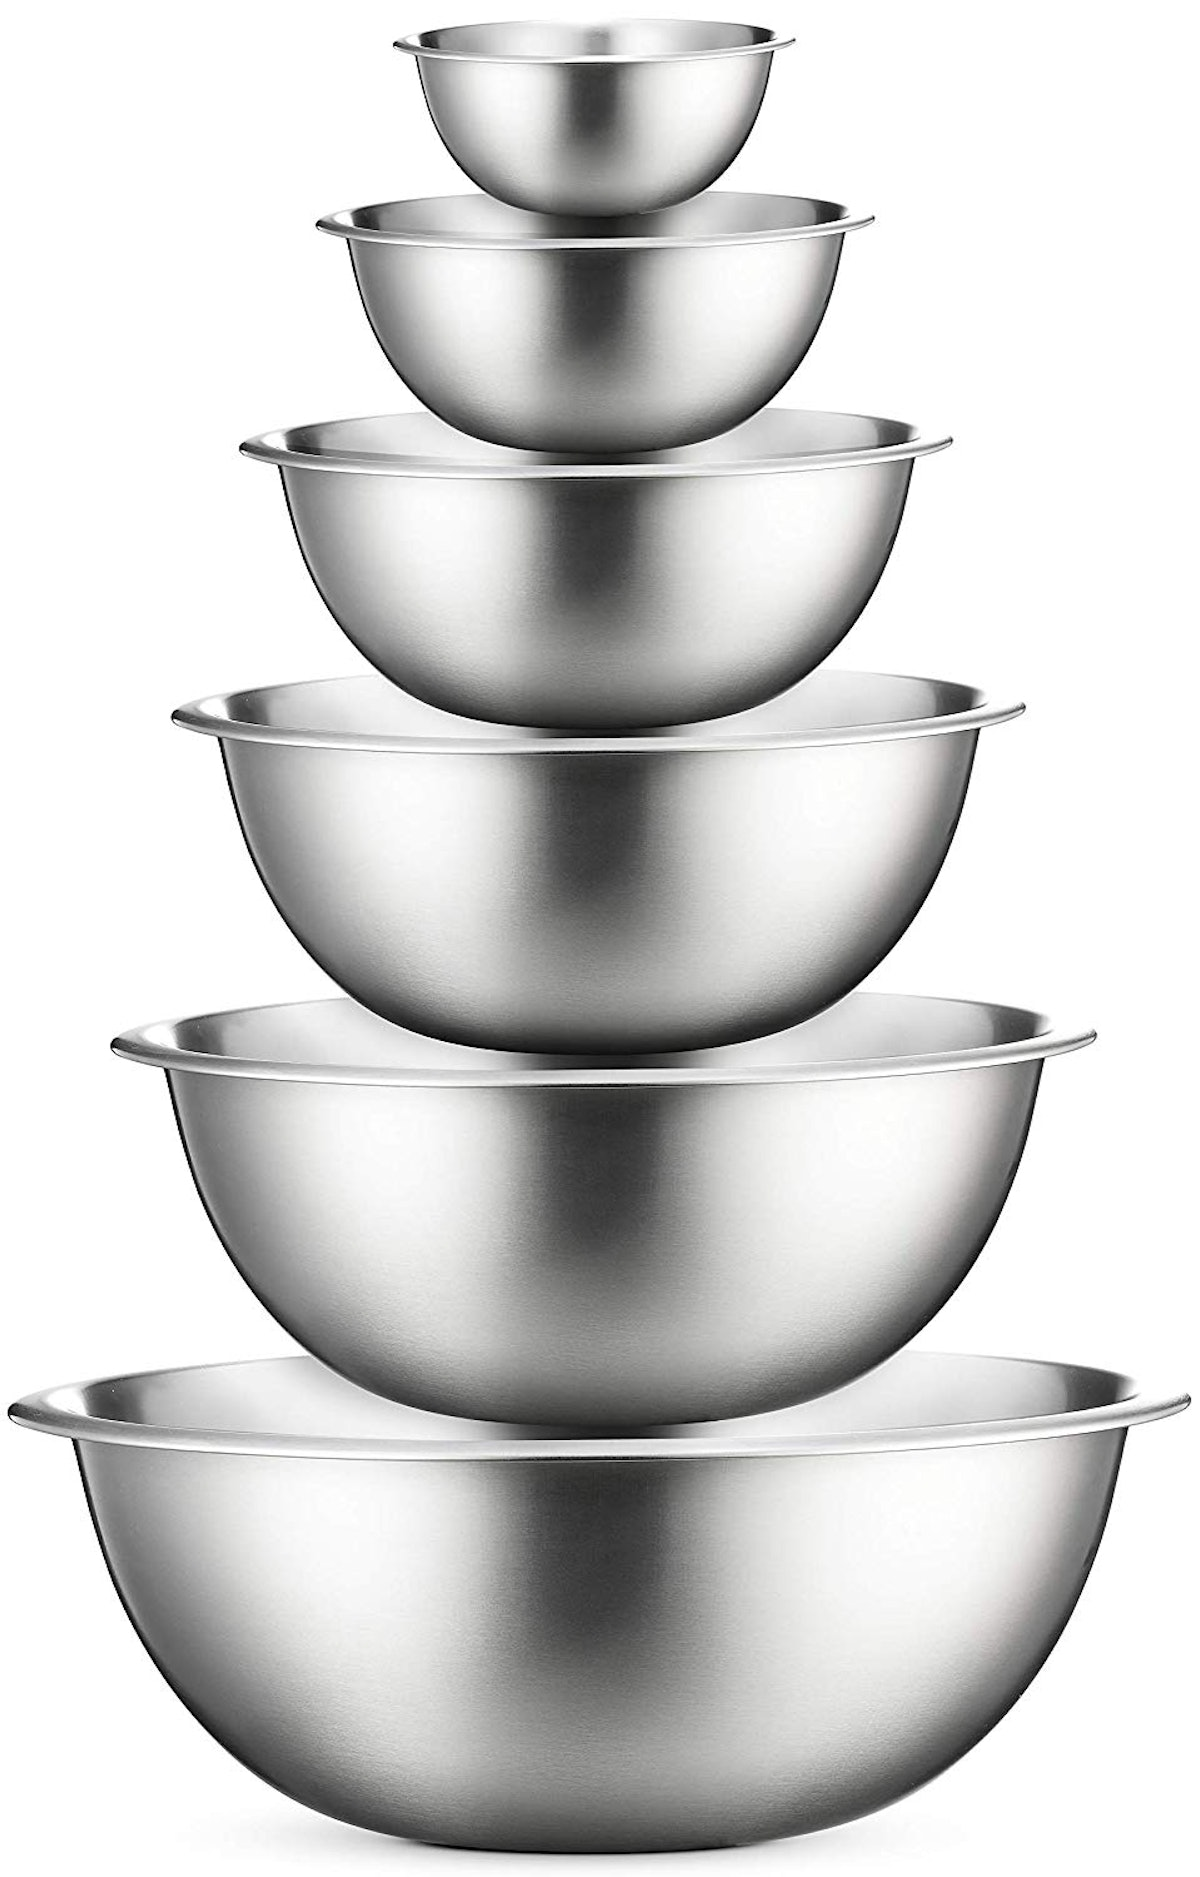 FineDine Stainless Steel Mixing Bowls (6-Piece Set)